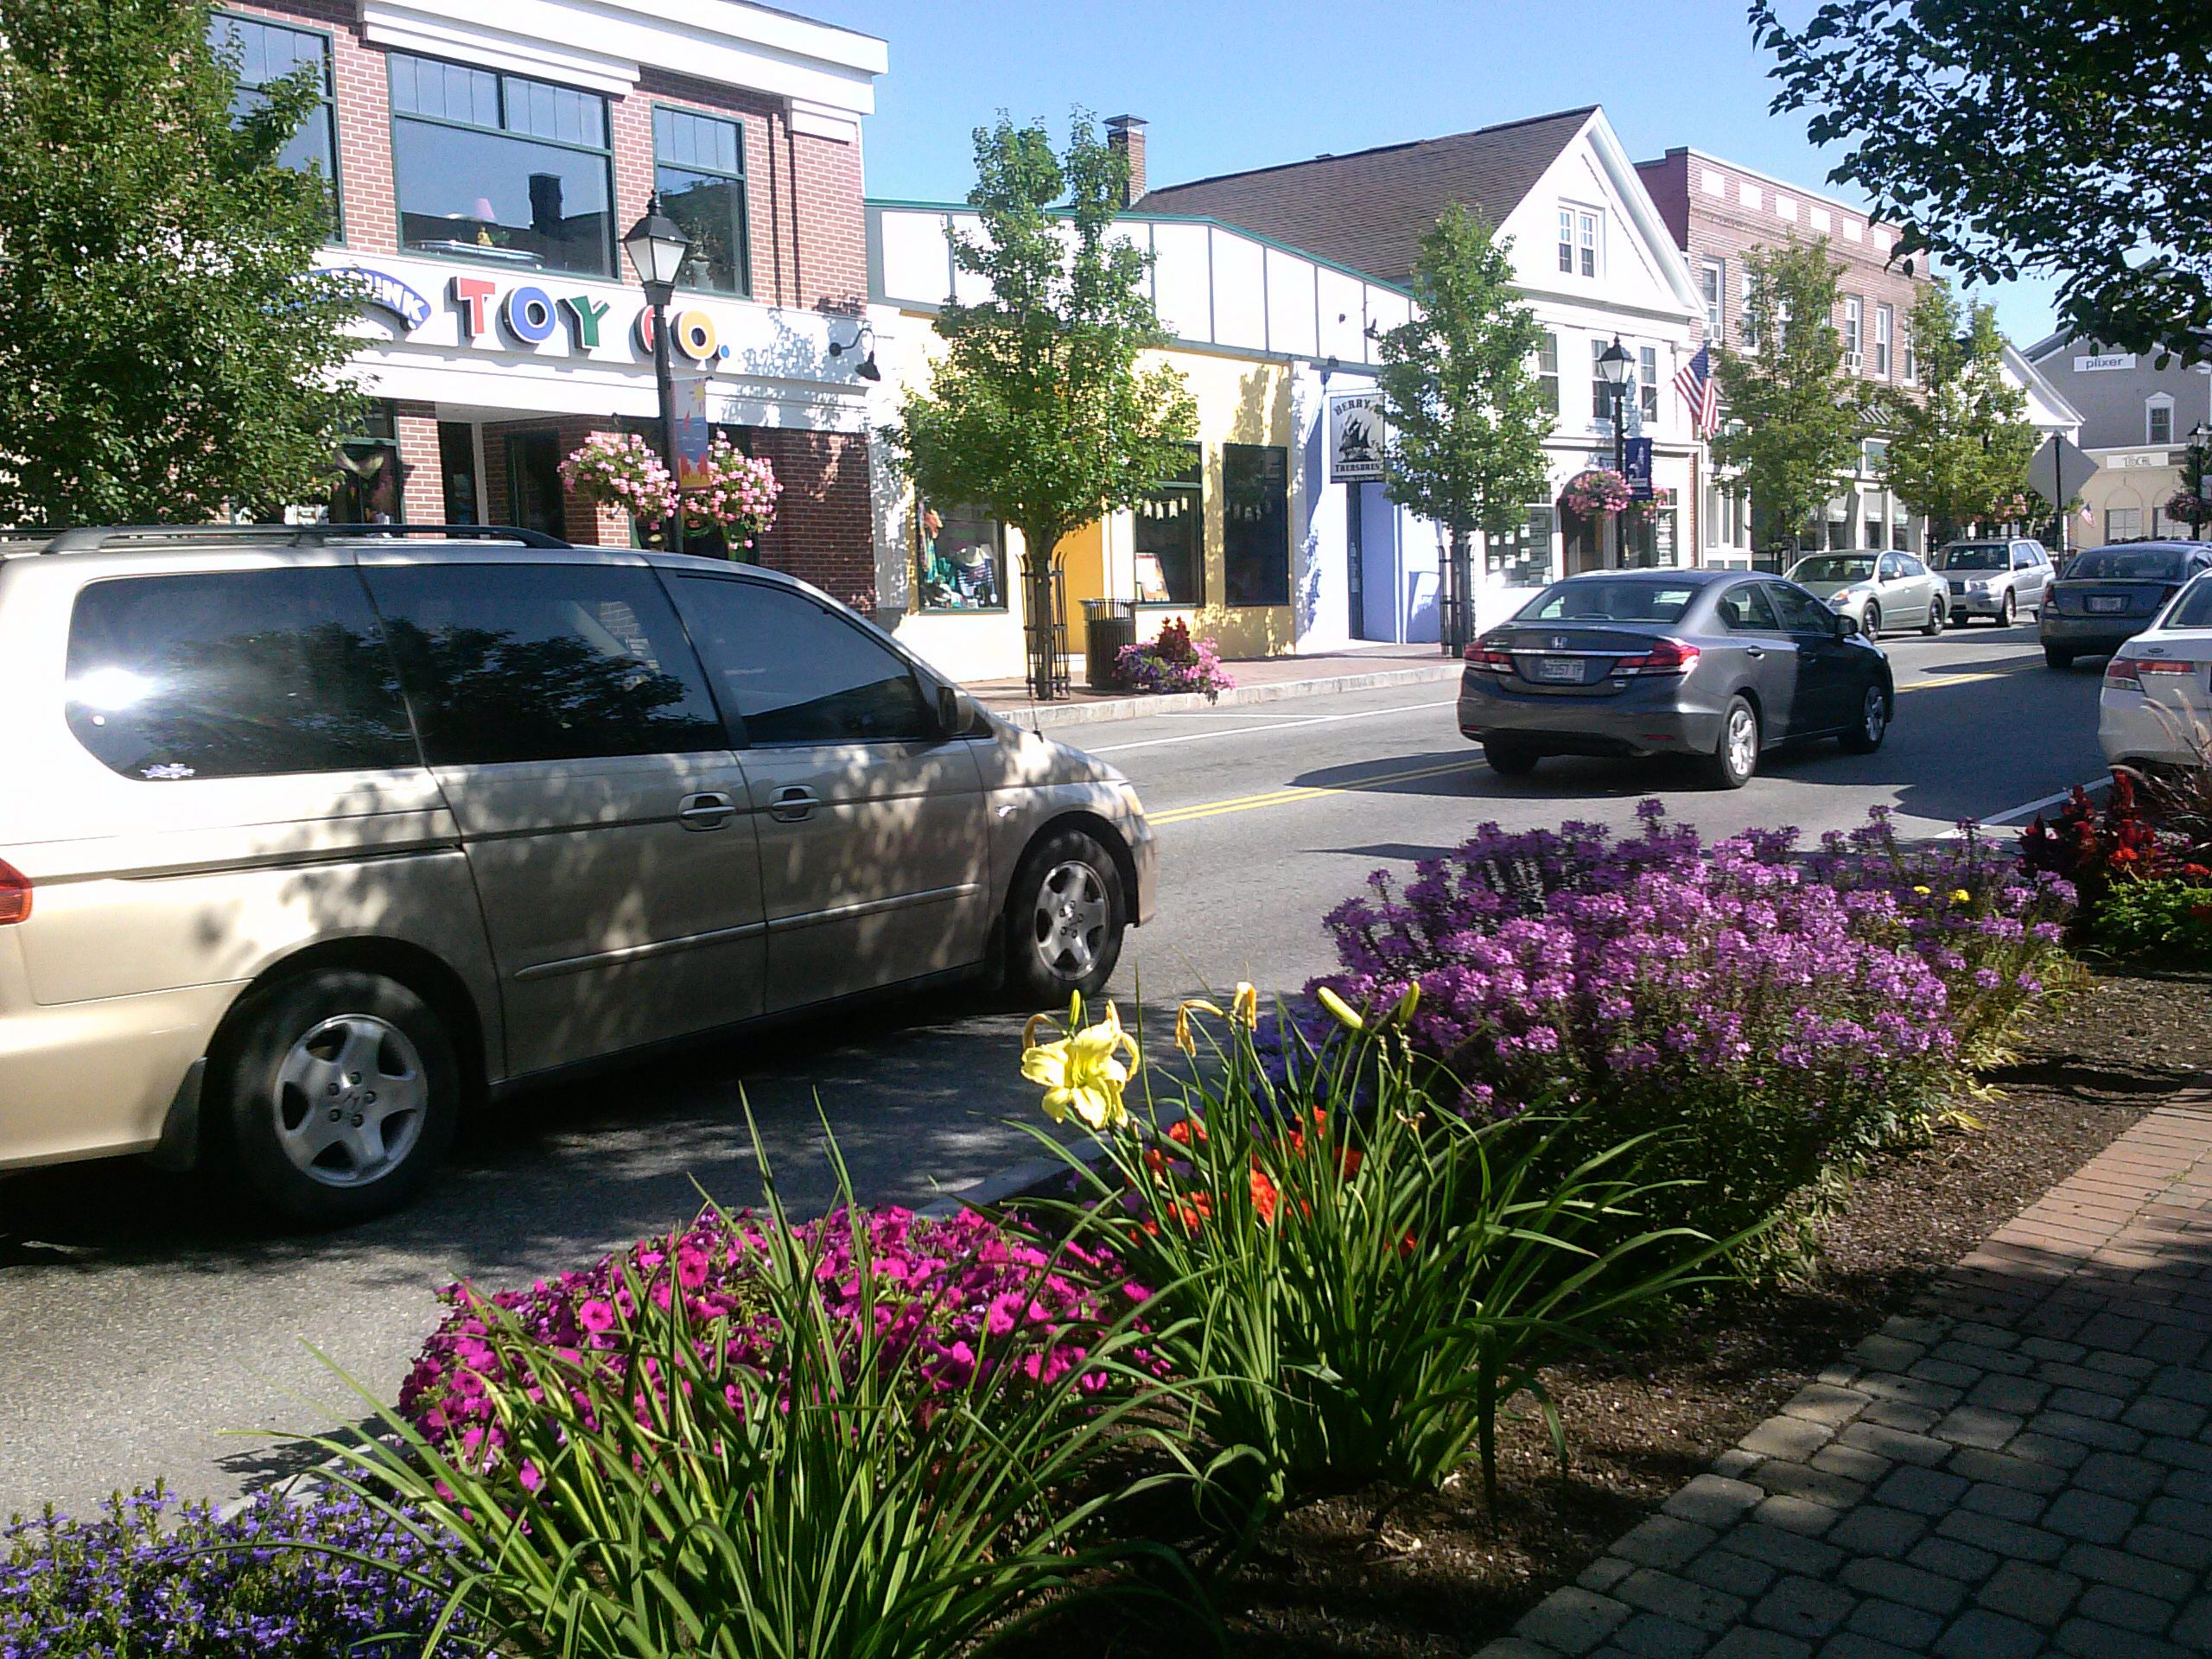 Kennebunk,Maine has a downtown with many shops,restaurants